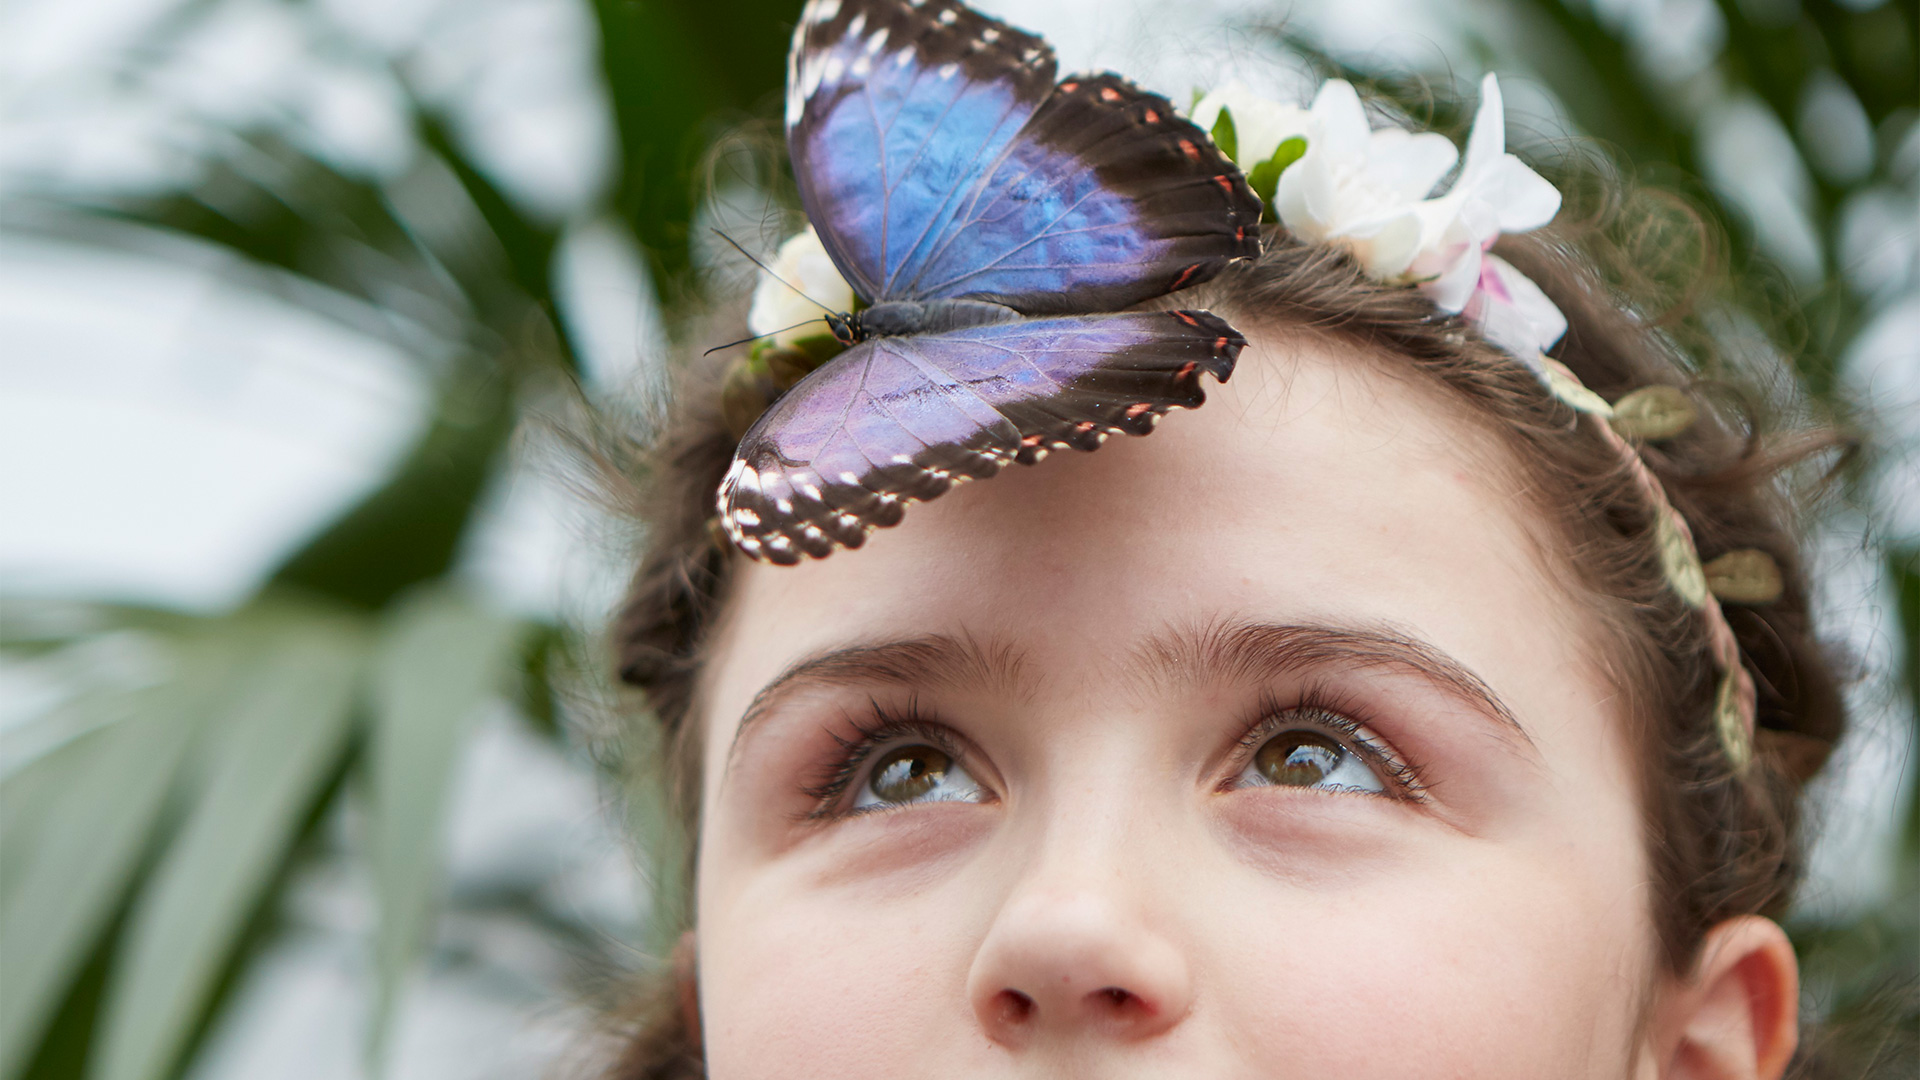 A girl looks up at a butterfly, which has landed on her forehead.